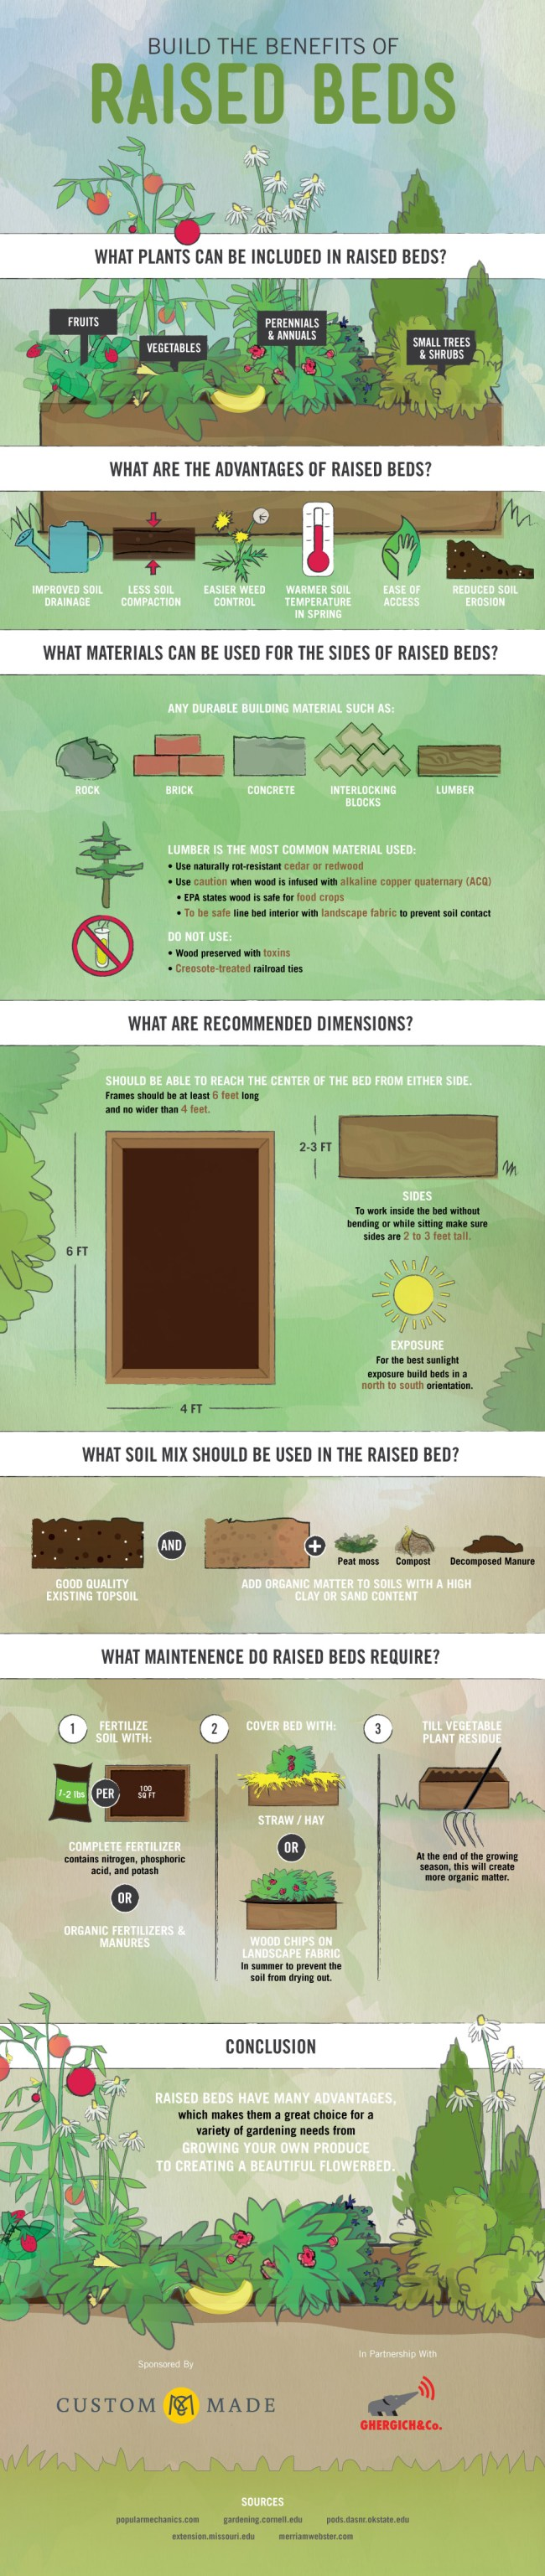 Build The Benefits of Raised Beds